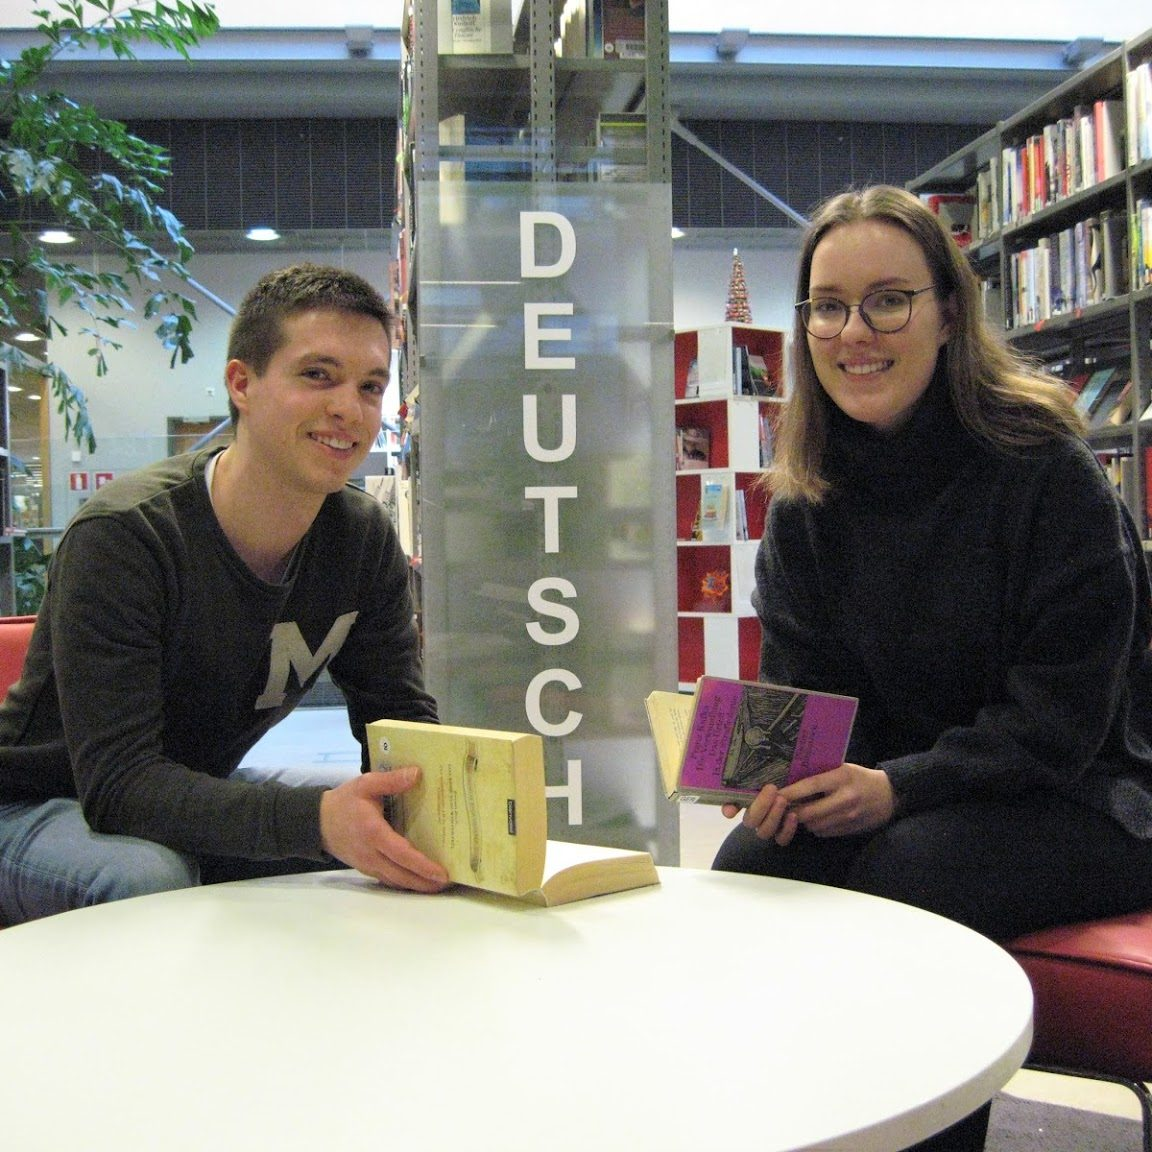 German business students Elisabeth von Babo and Johannes Baumann